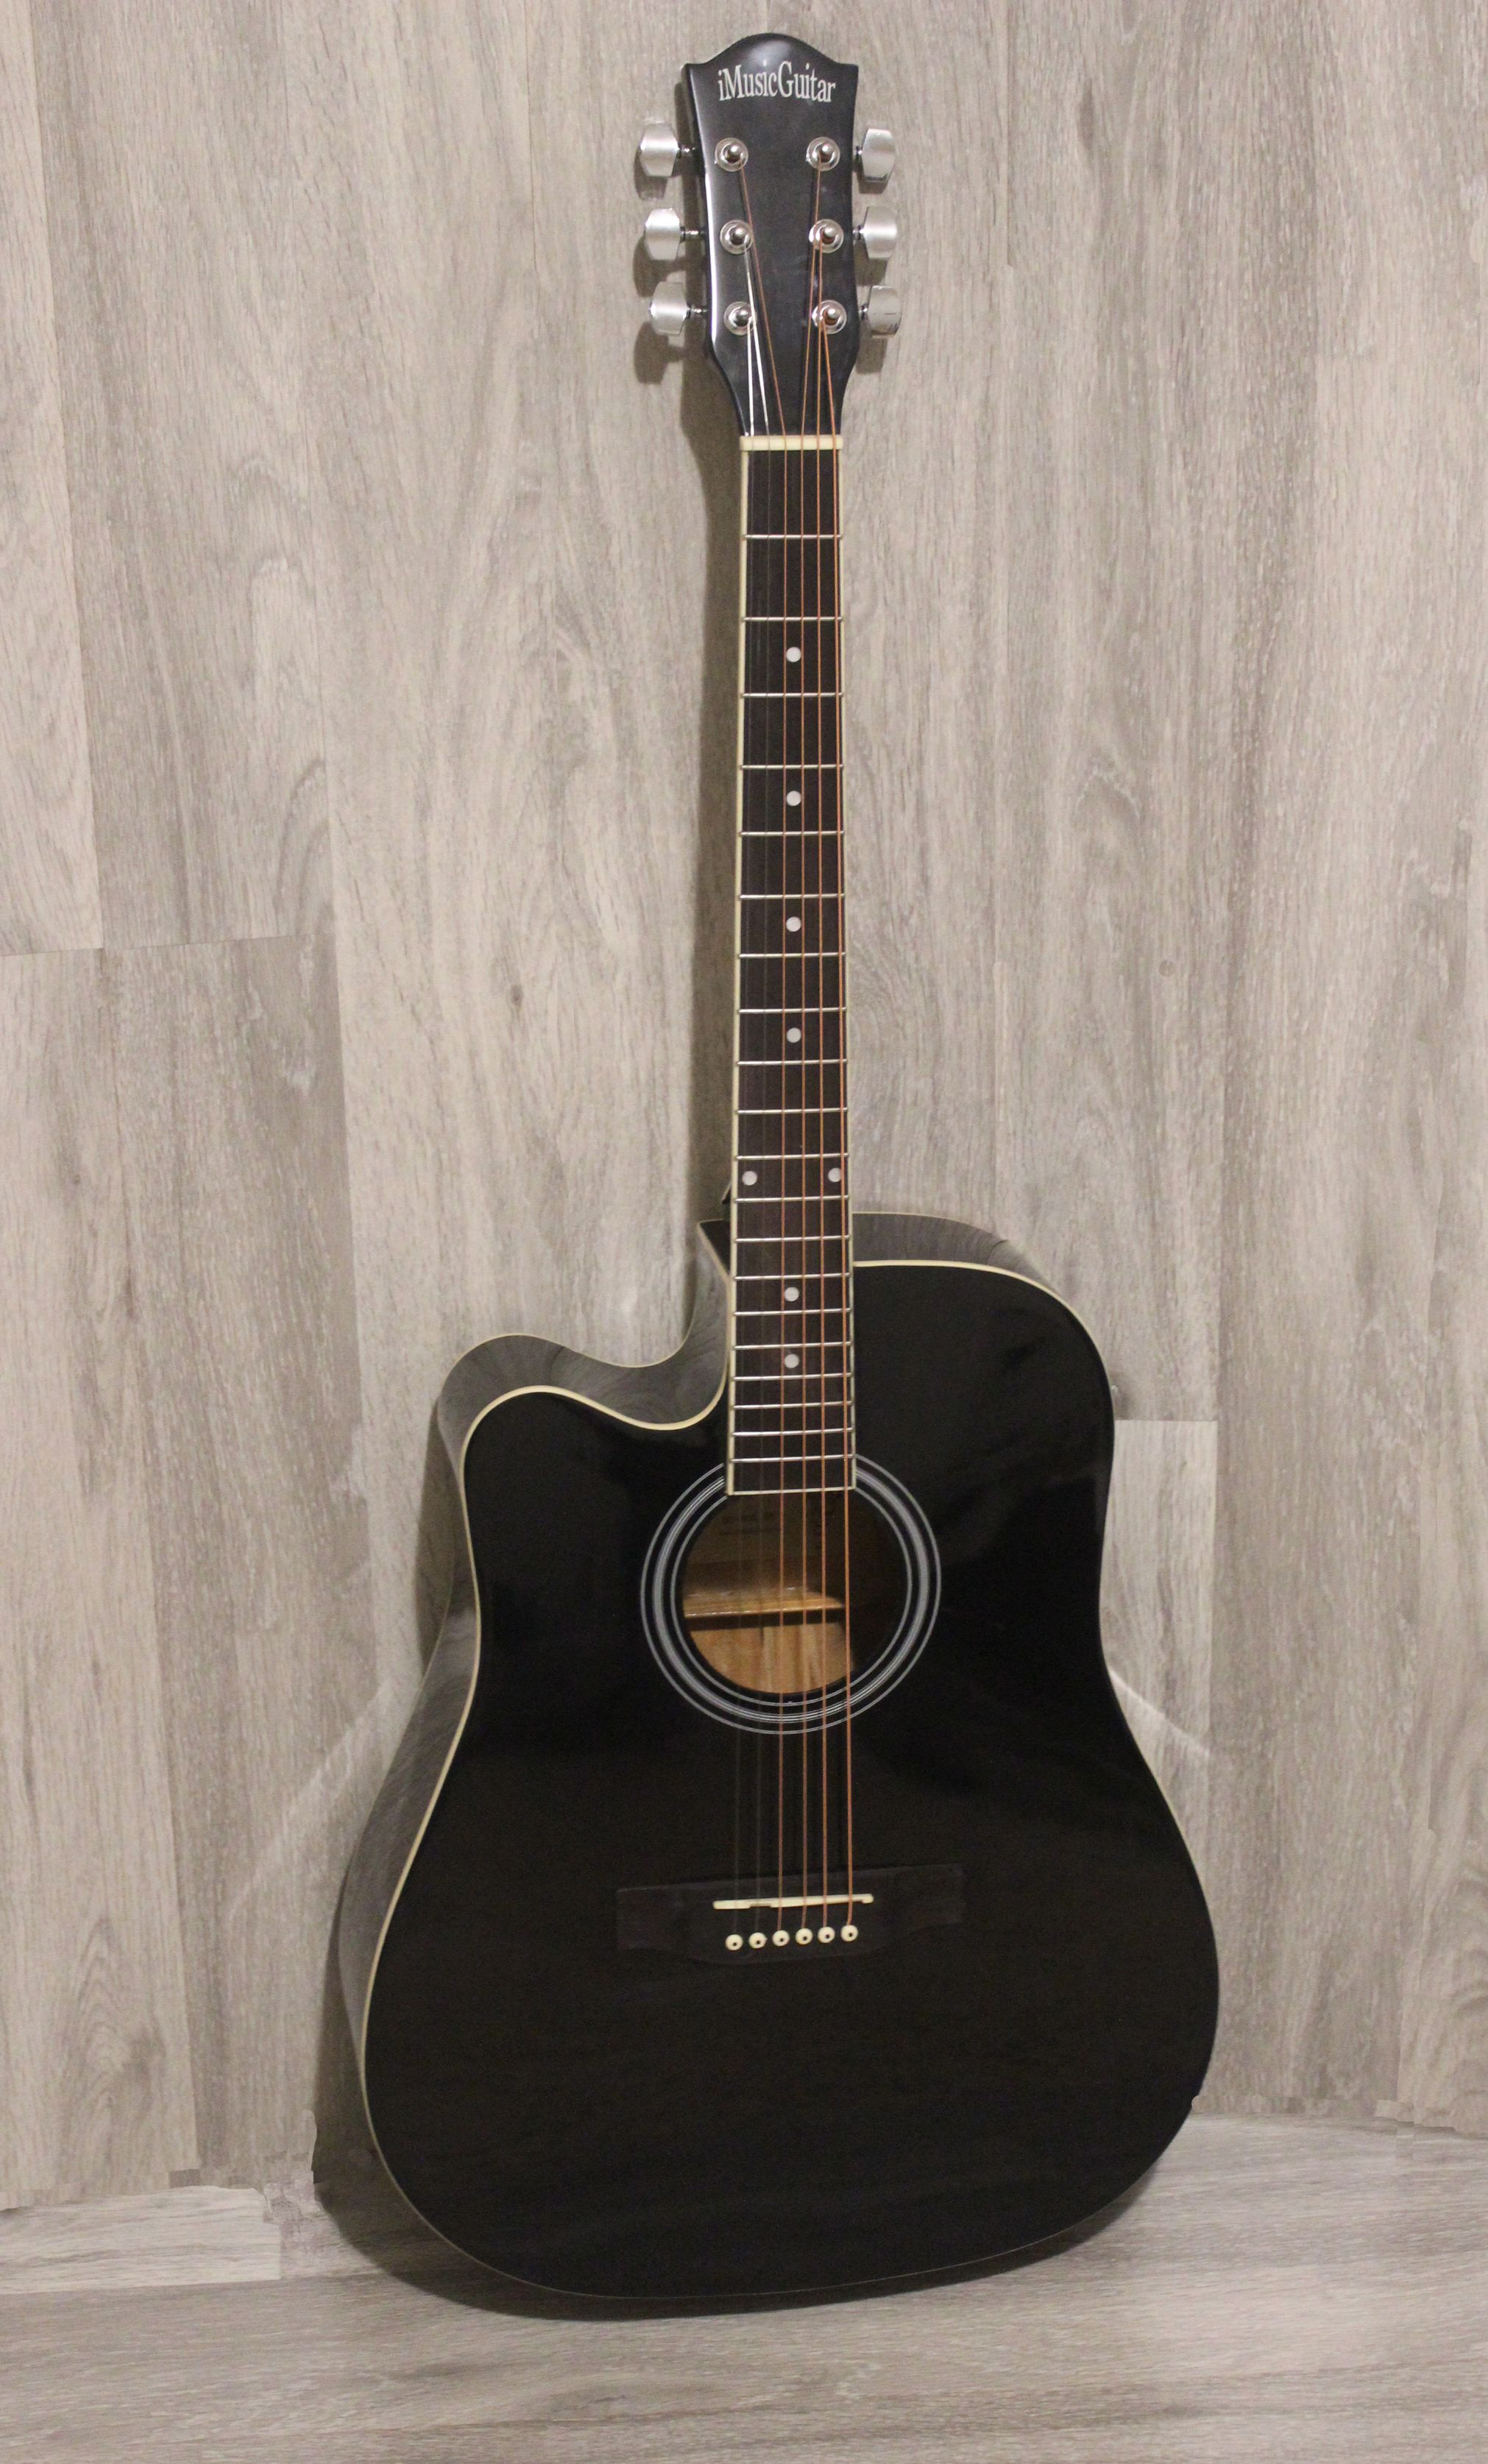 Left Handed Acoustic Guitar Black 41 Inch Full Size Cutaway Imusic810lf Left Handed Acoustic Guitar Acoustic Bass Guitar Acoustic Guitar